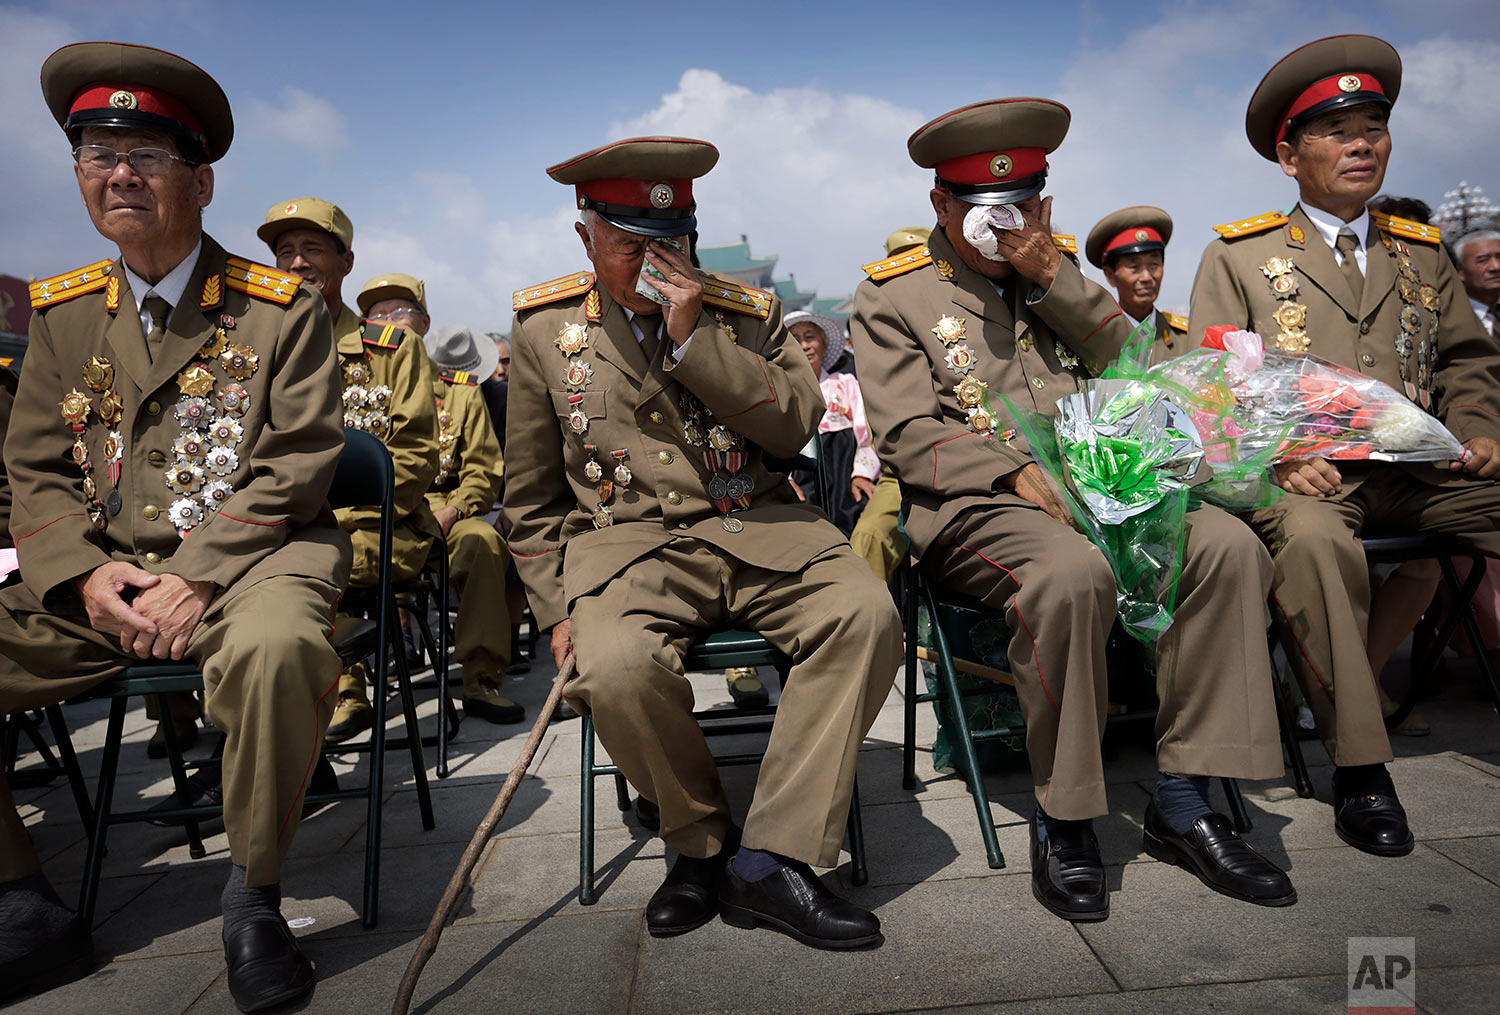 North Korean war veterans express varying degrees of emotion as they watch a parade in Pyongyang's Kim Il Sung Square on July 27, 2014, to mark the 61st anniversary of the armistice that halted fighting in the Korean War. (AP Photo/Wong Maye-E)